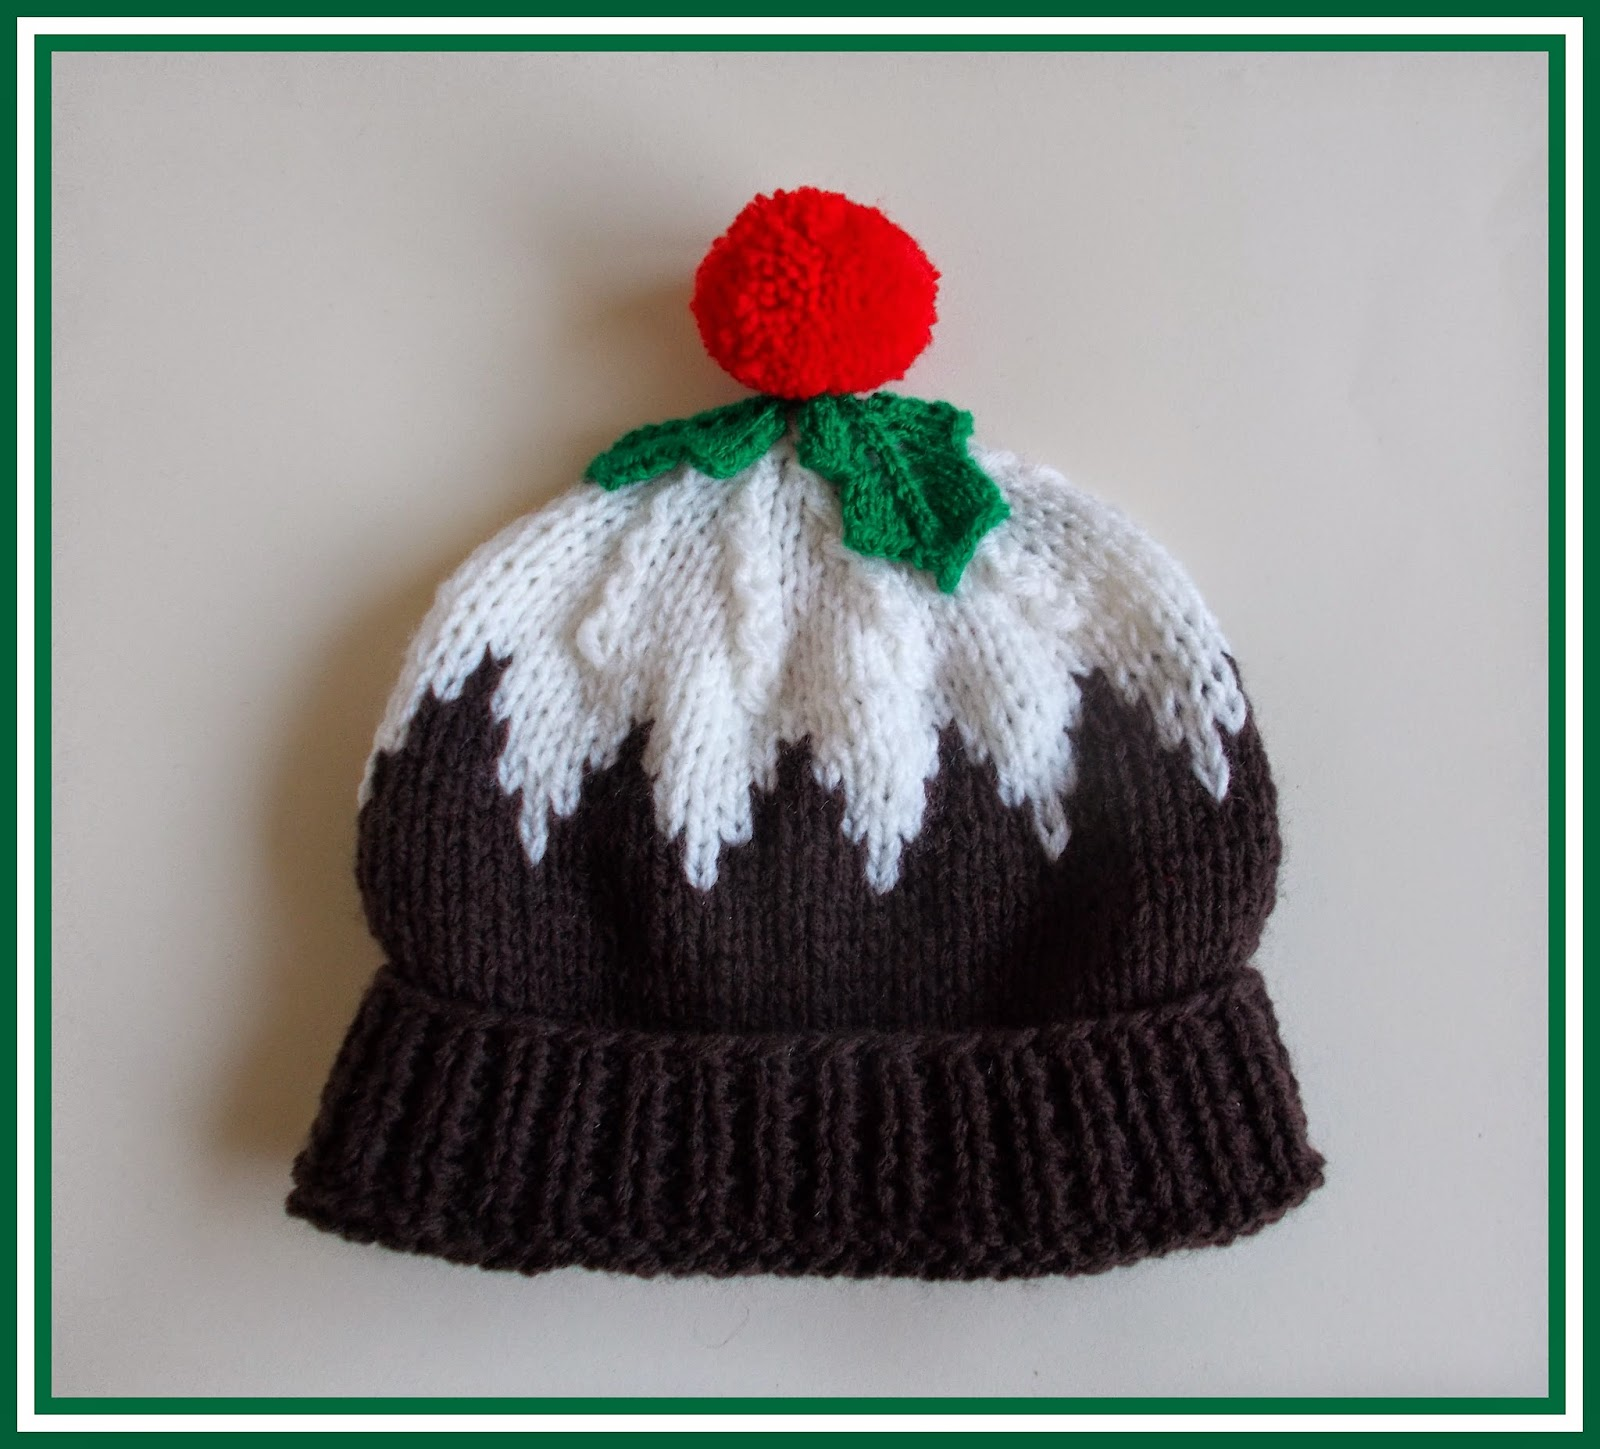 mariannas lazy daisy days: Christmas Pudding Hat